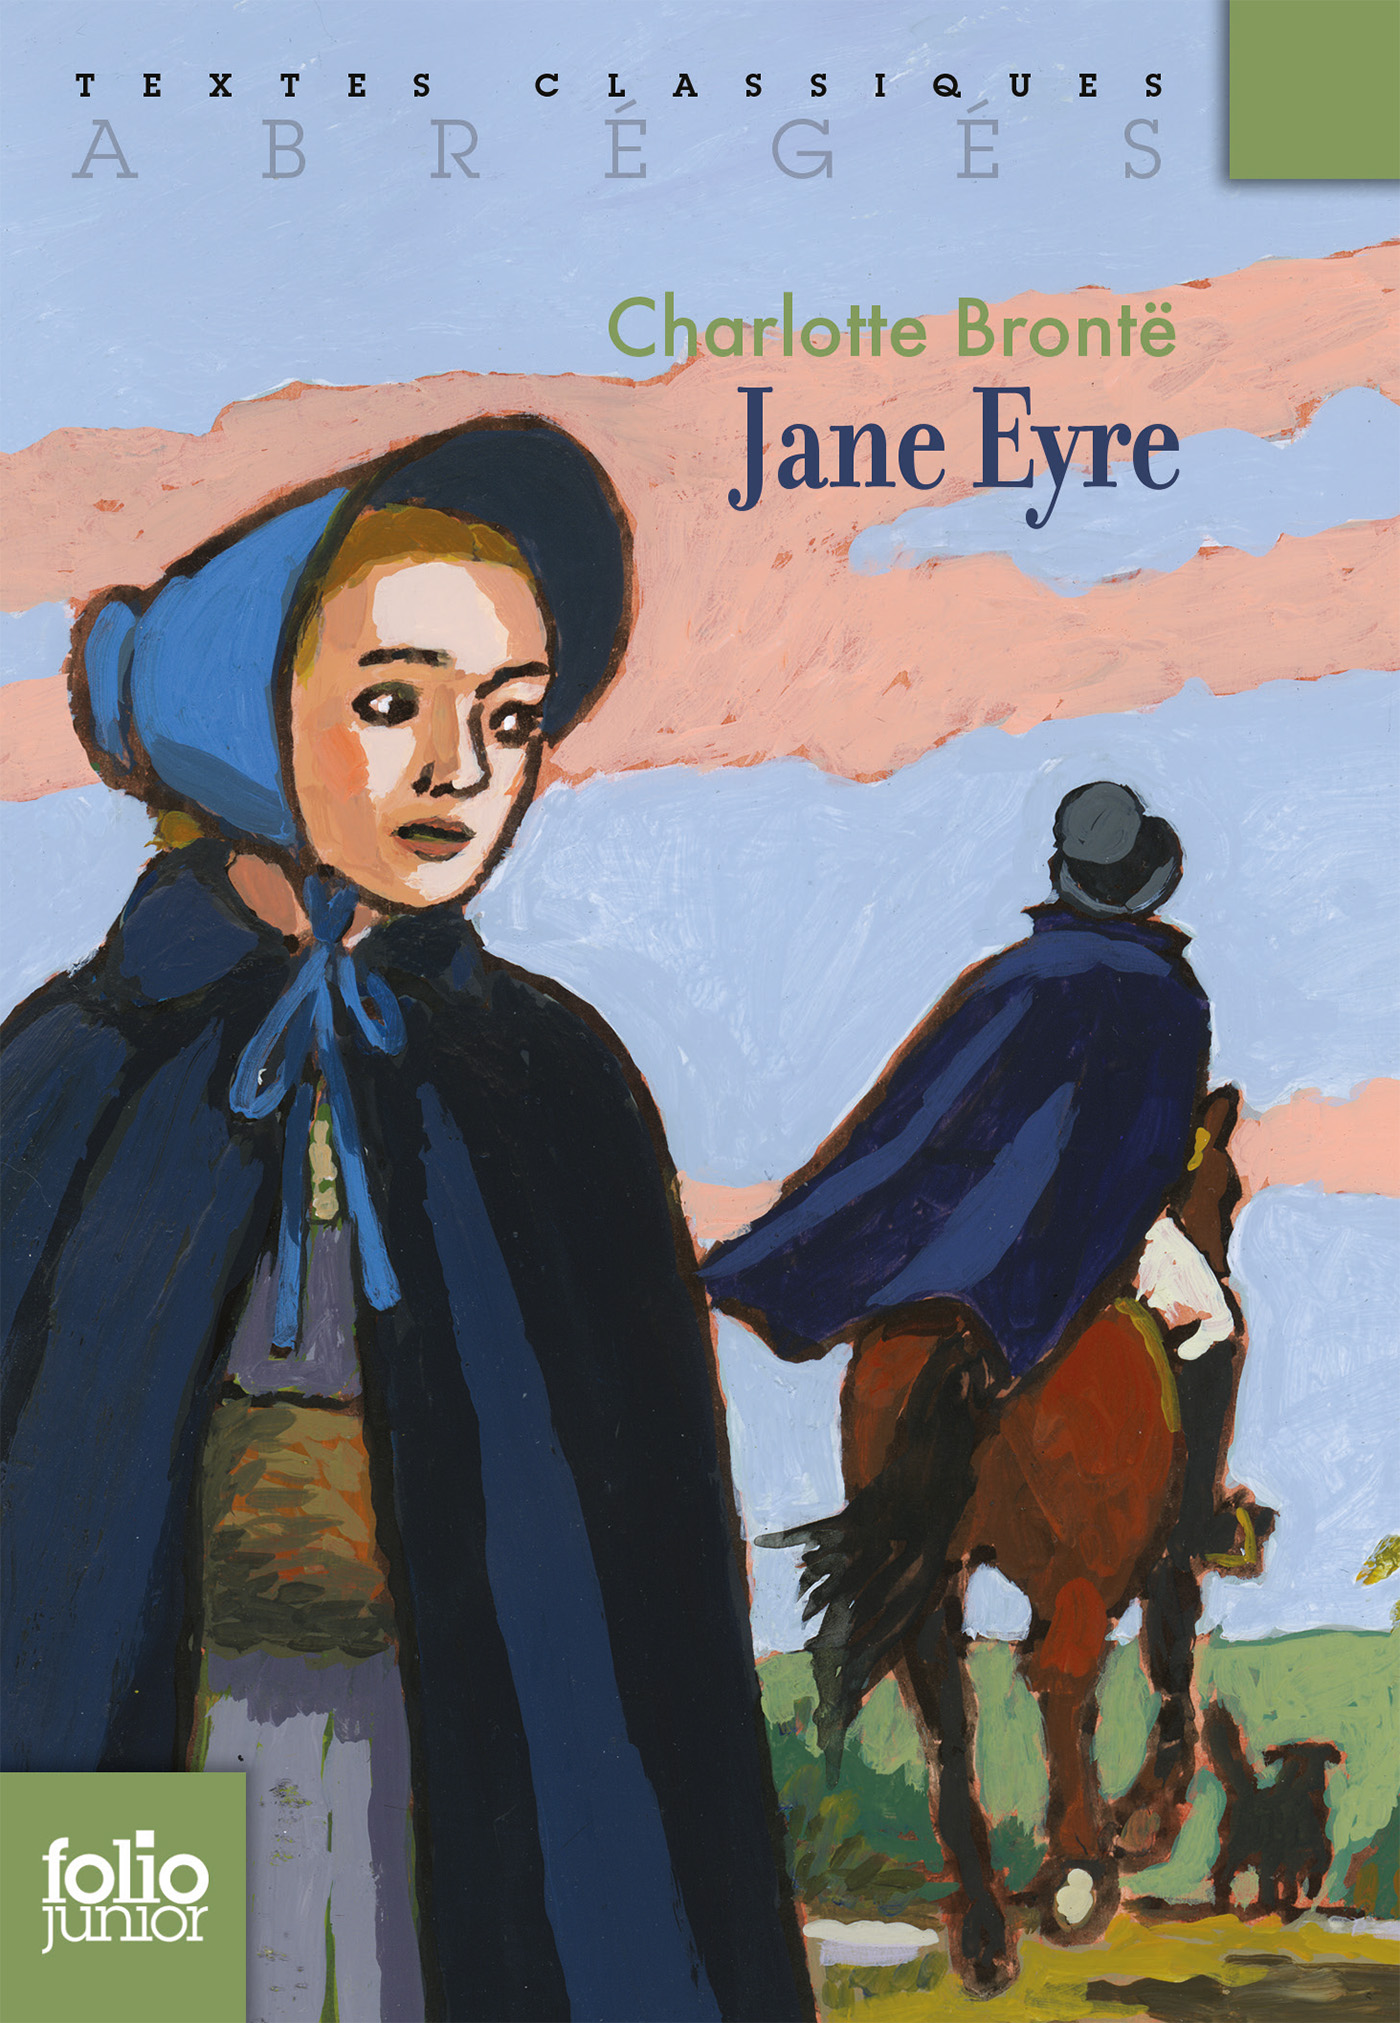 life cycle of a caterpillar that correspond to the story of jane eyre by charlotte bronte Mansfield park, jane eyre, tess of the d'urbervilles find this pin and more on jane austen, charlotte bronte, thomas hardy story of my life yo.